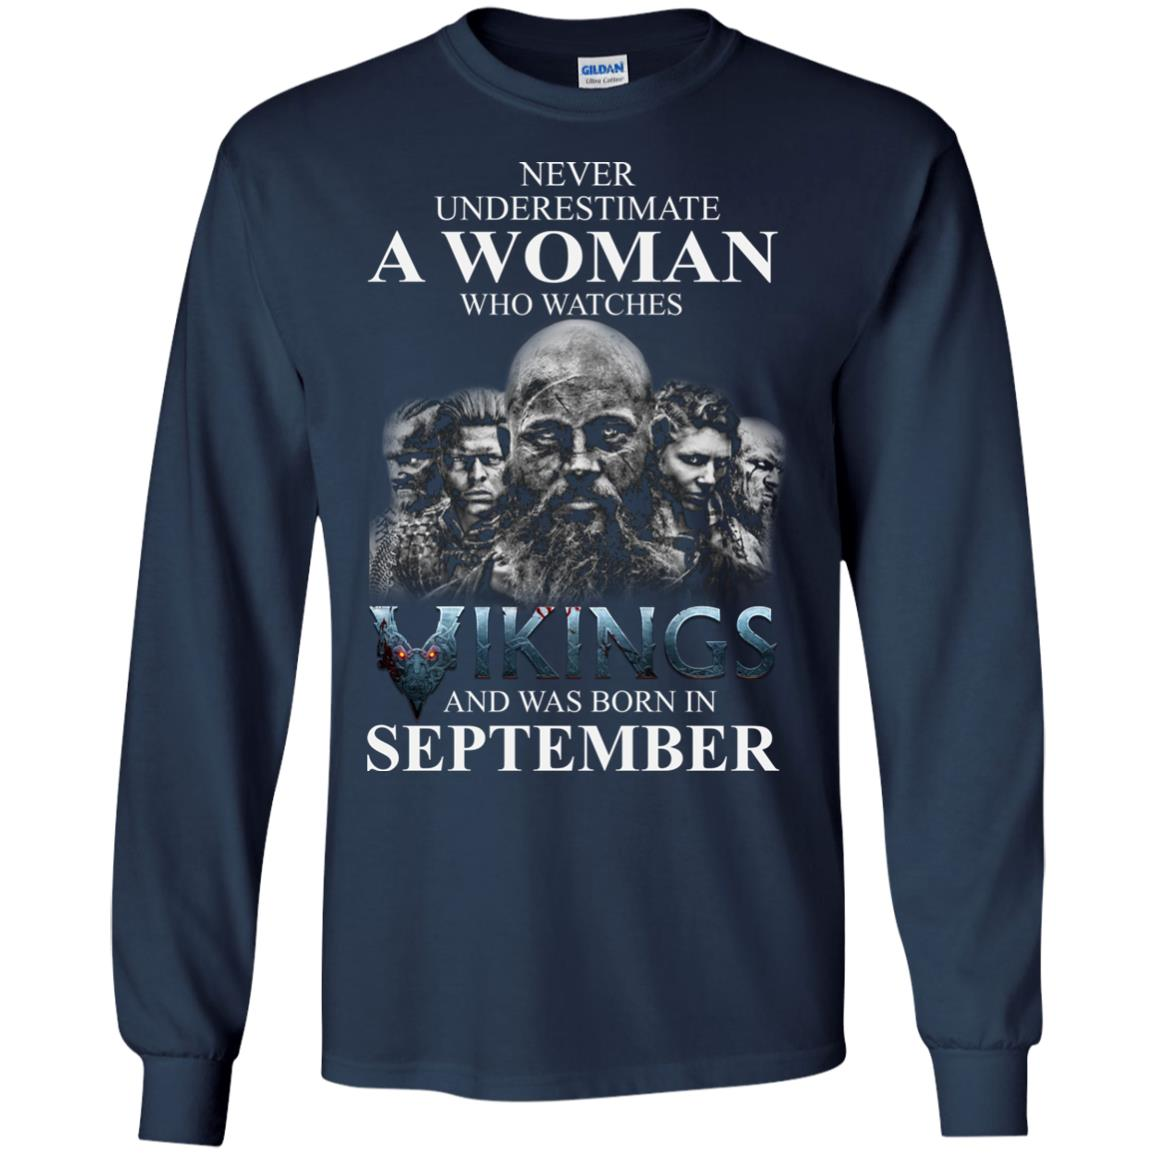 image 1258 - Never Underestimate A woman who watches Vikings and was born in September shirt